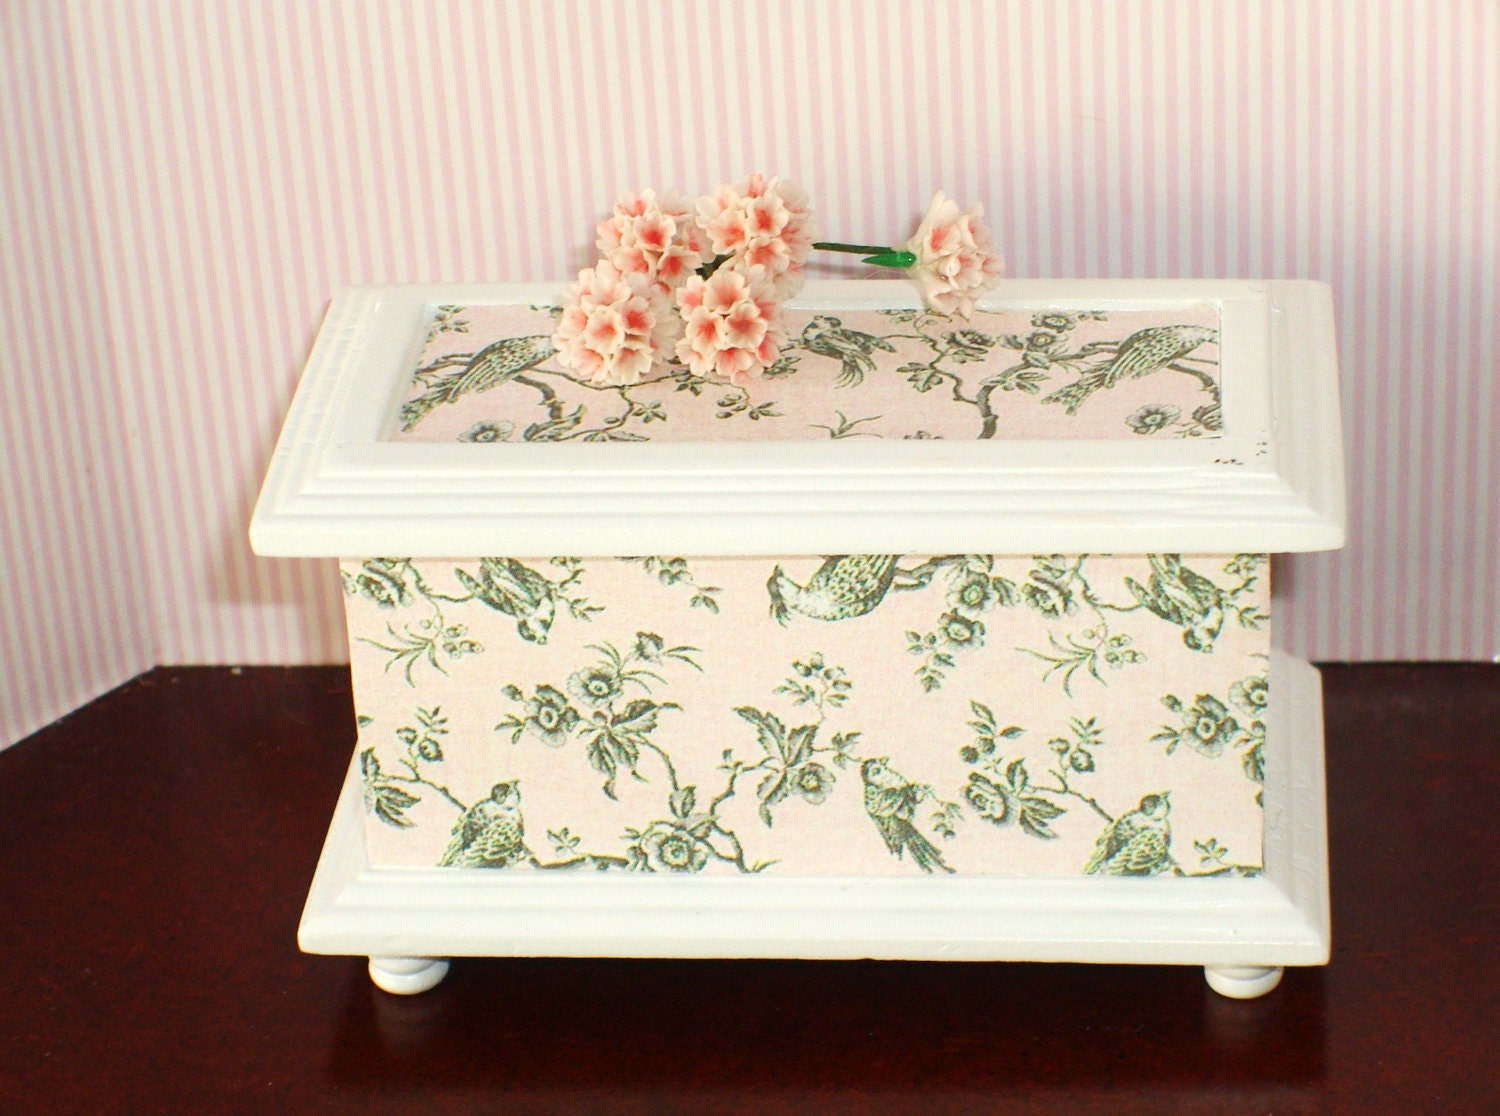 Shabby chic toile blanket chest by clarabellasminis on etsy for Toile shabby chic